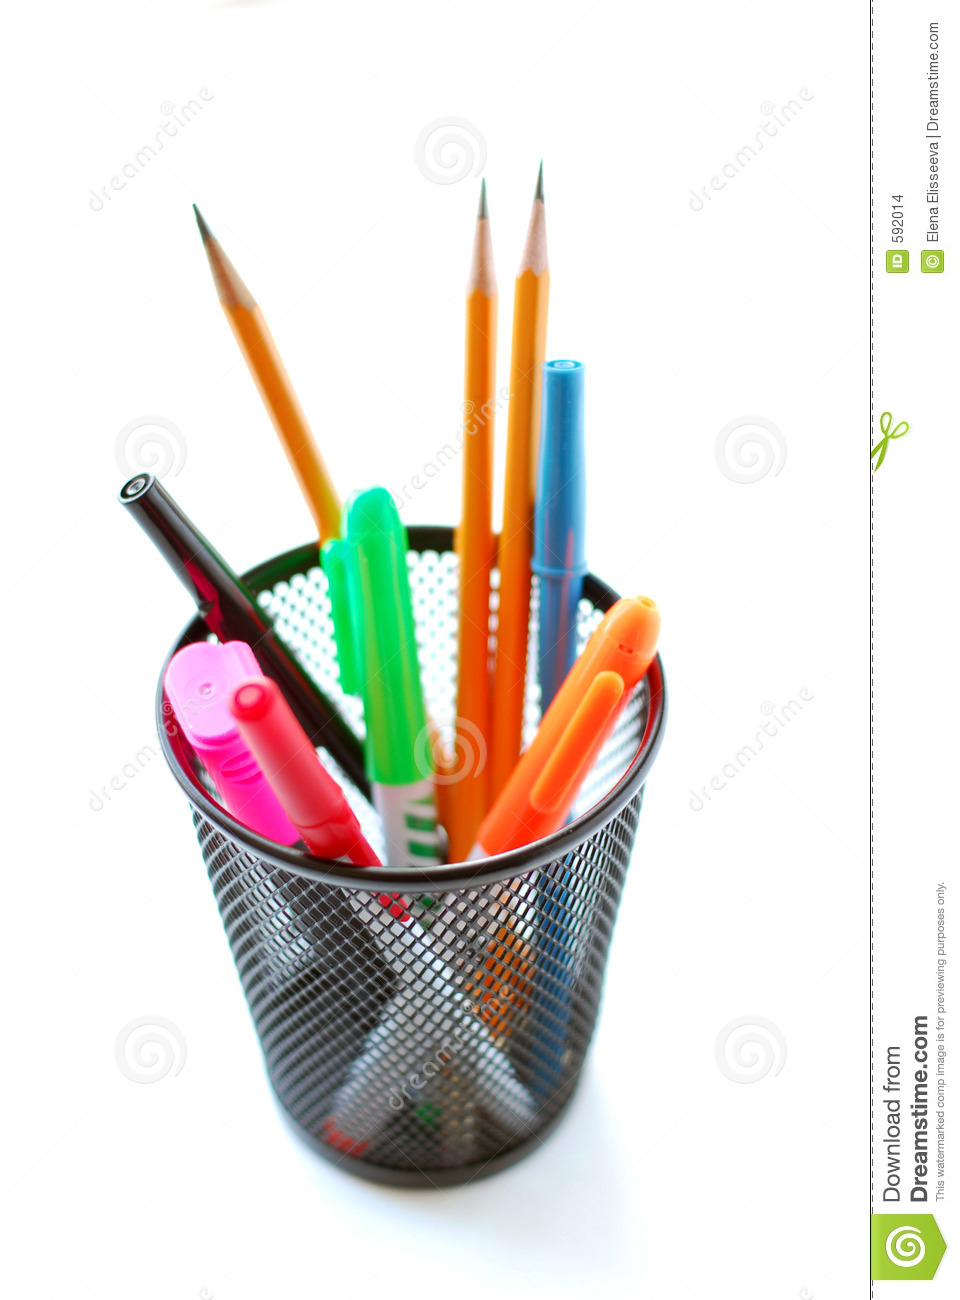 Pens And Pencils In Pencil Holder Stock Images - Image: 592014